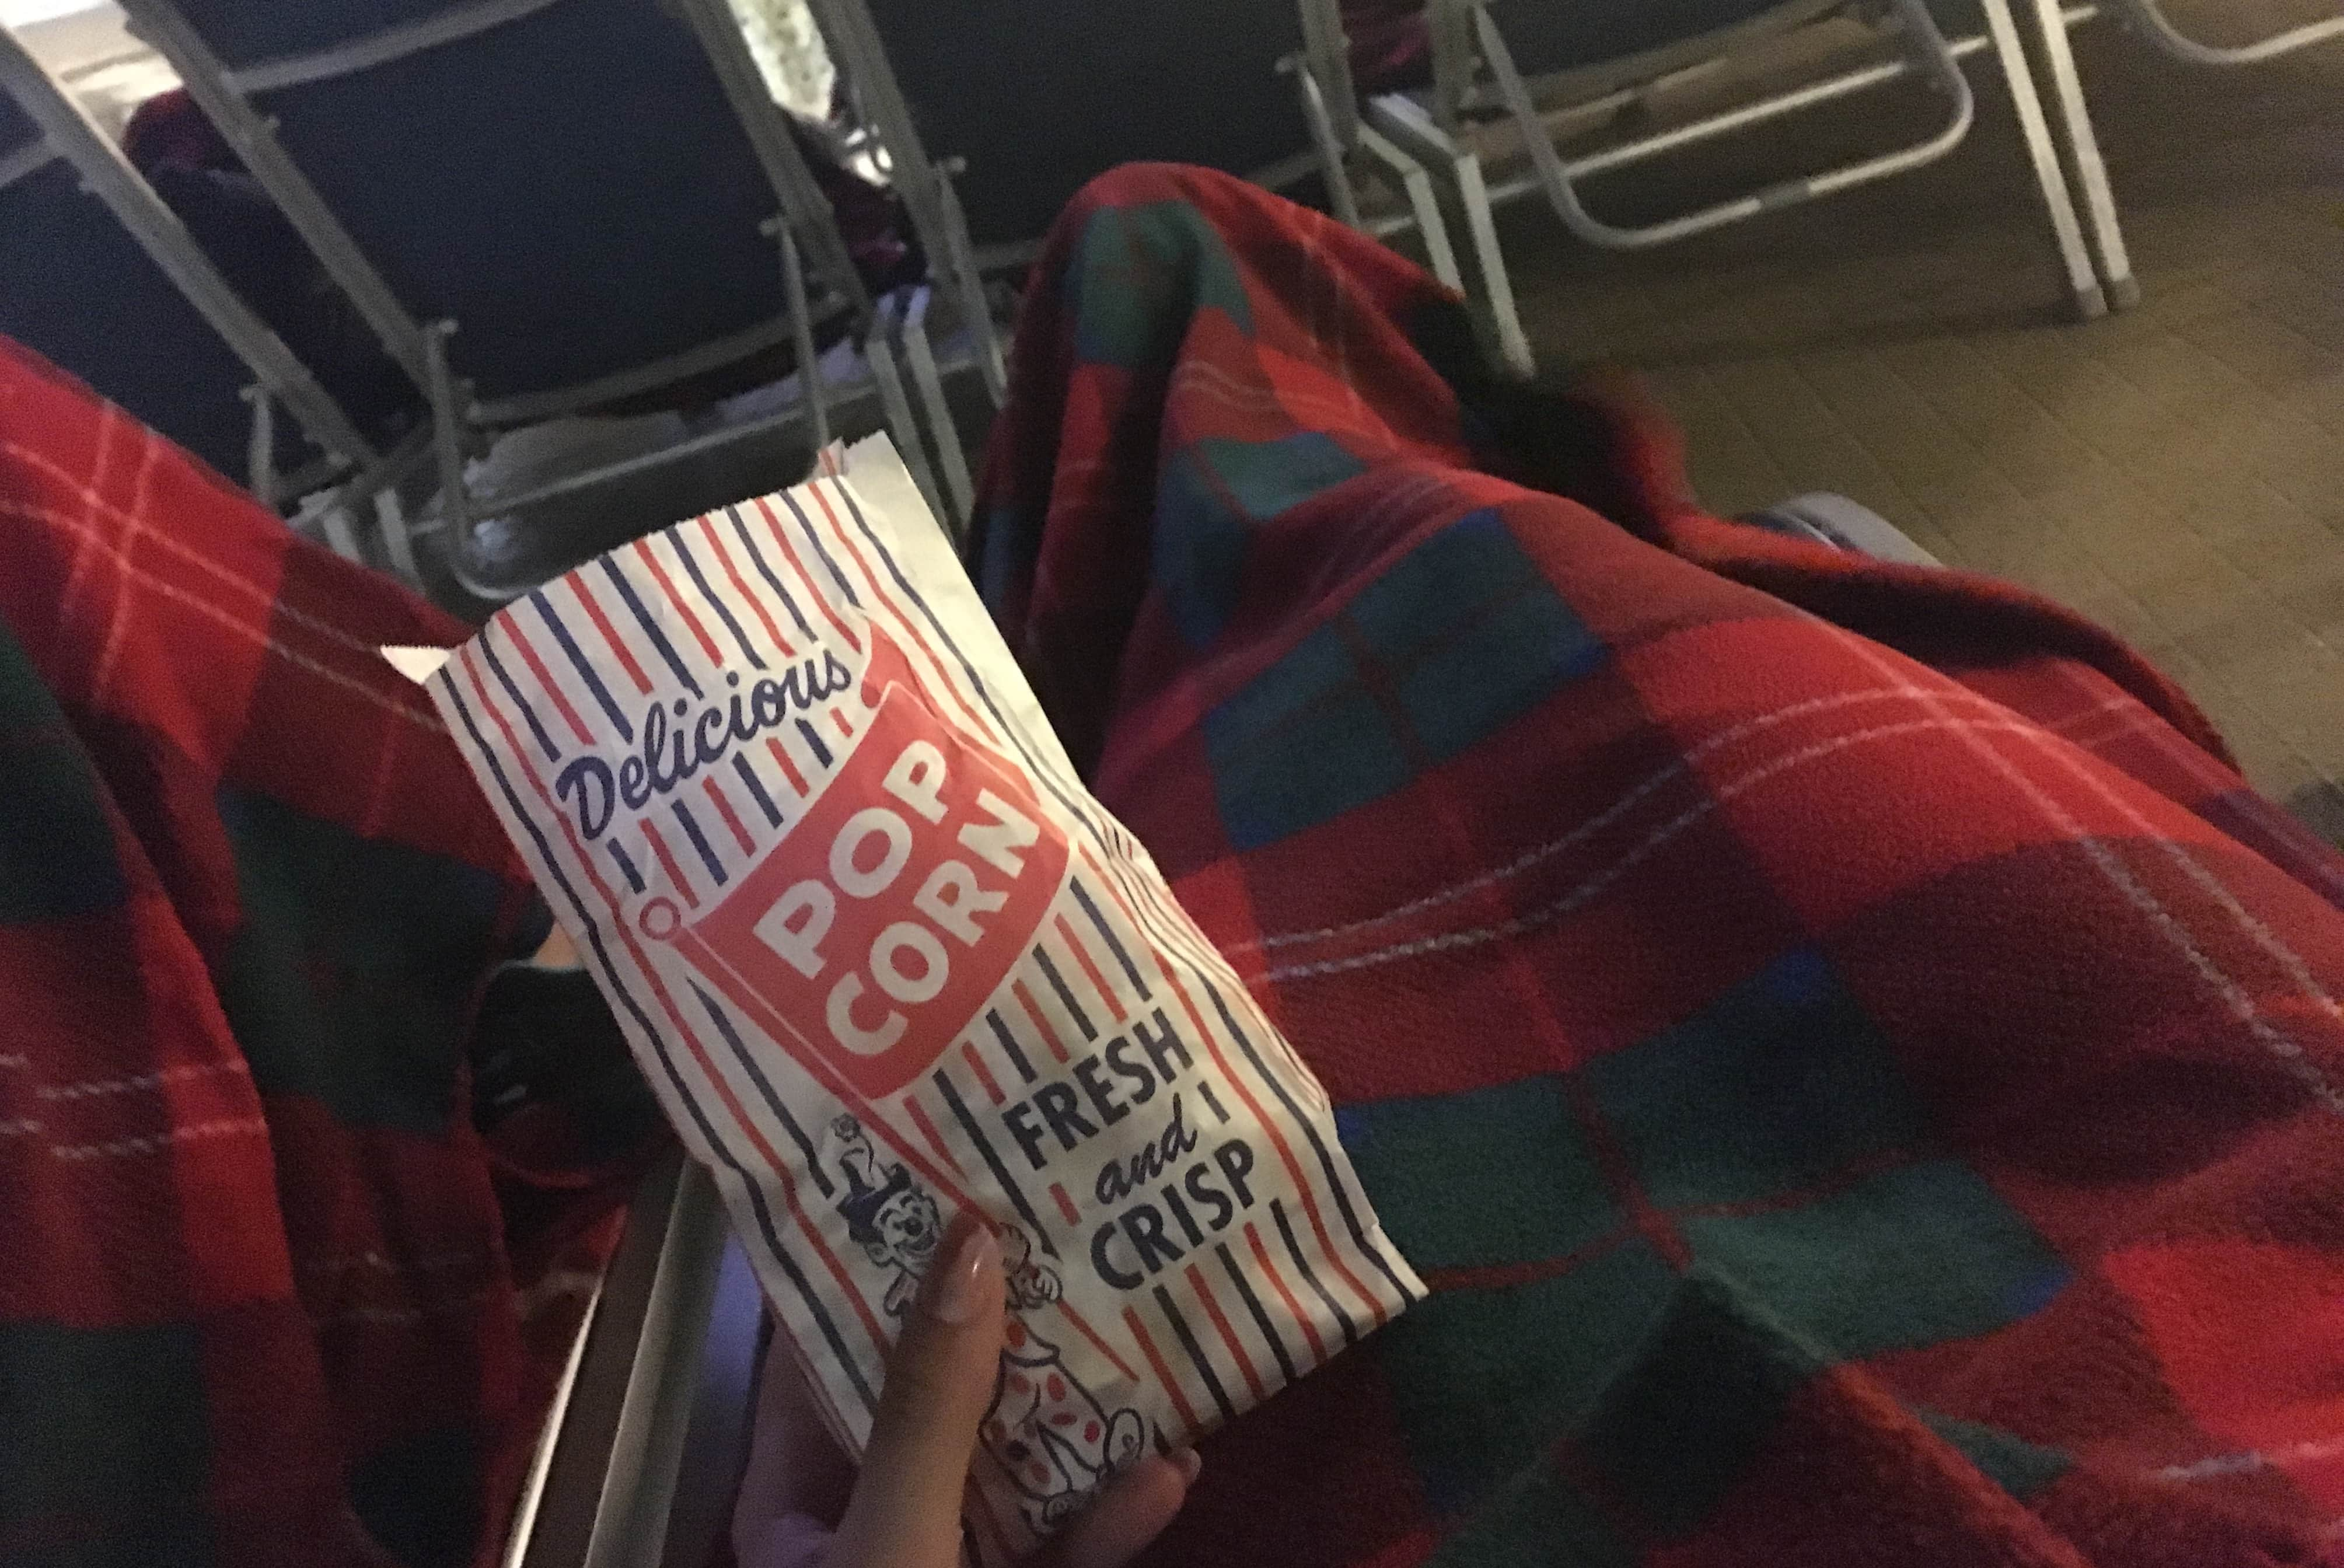 golden princess movies under the stars popcorn and blanket